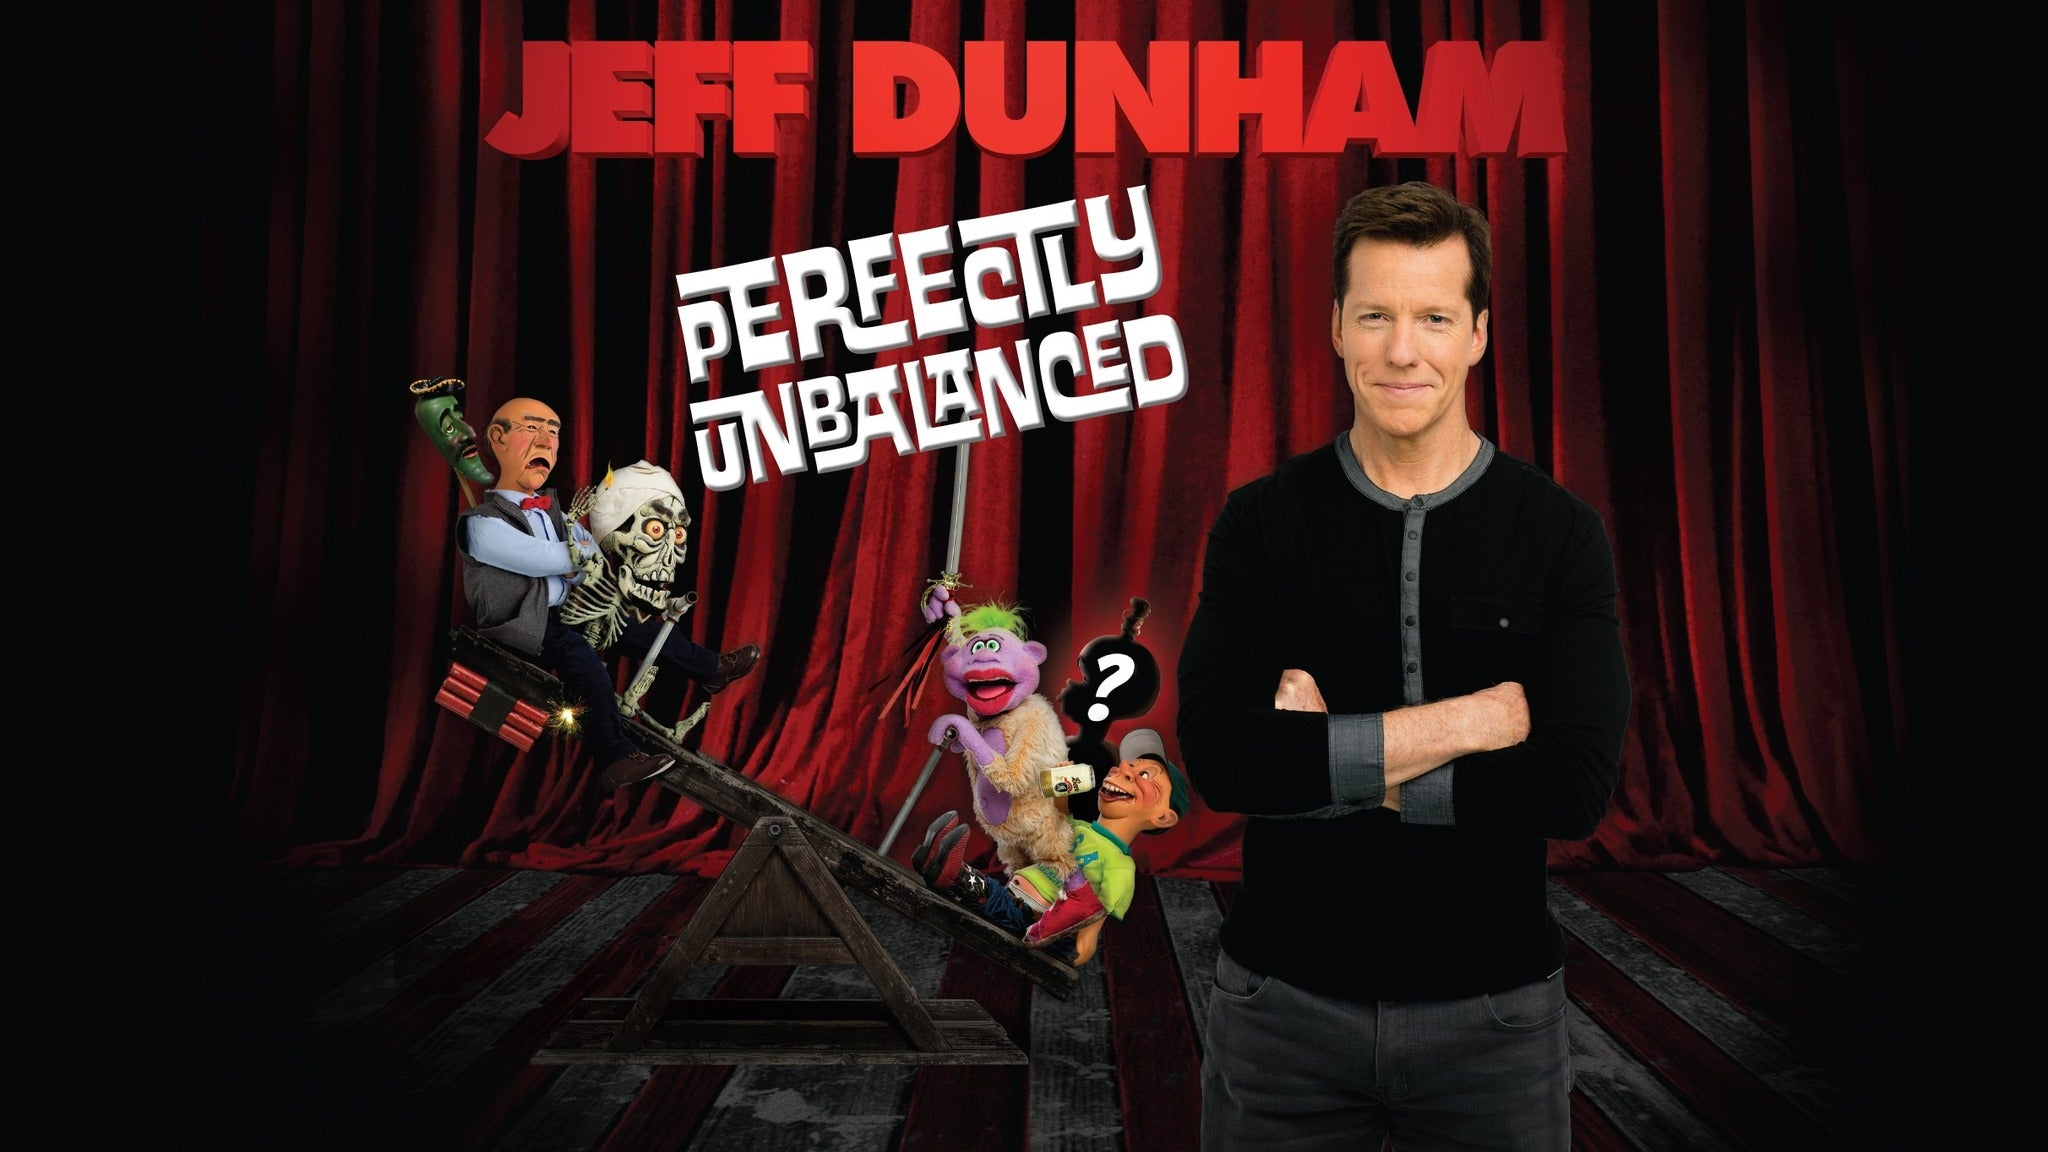 Jeff Dunham Perfectly Unbalanced Tour at Verizon Arena